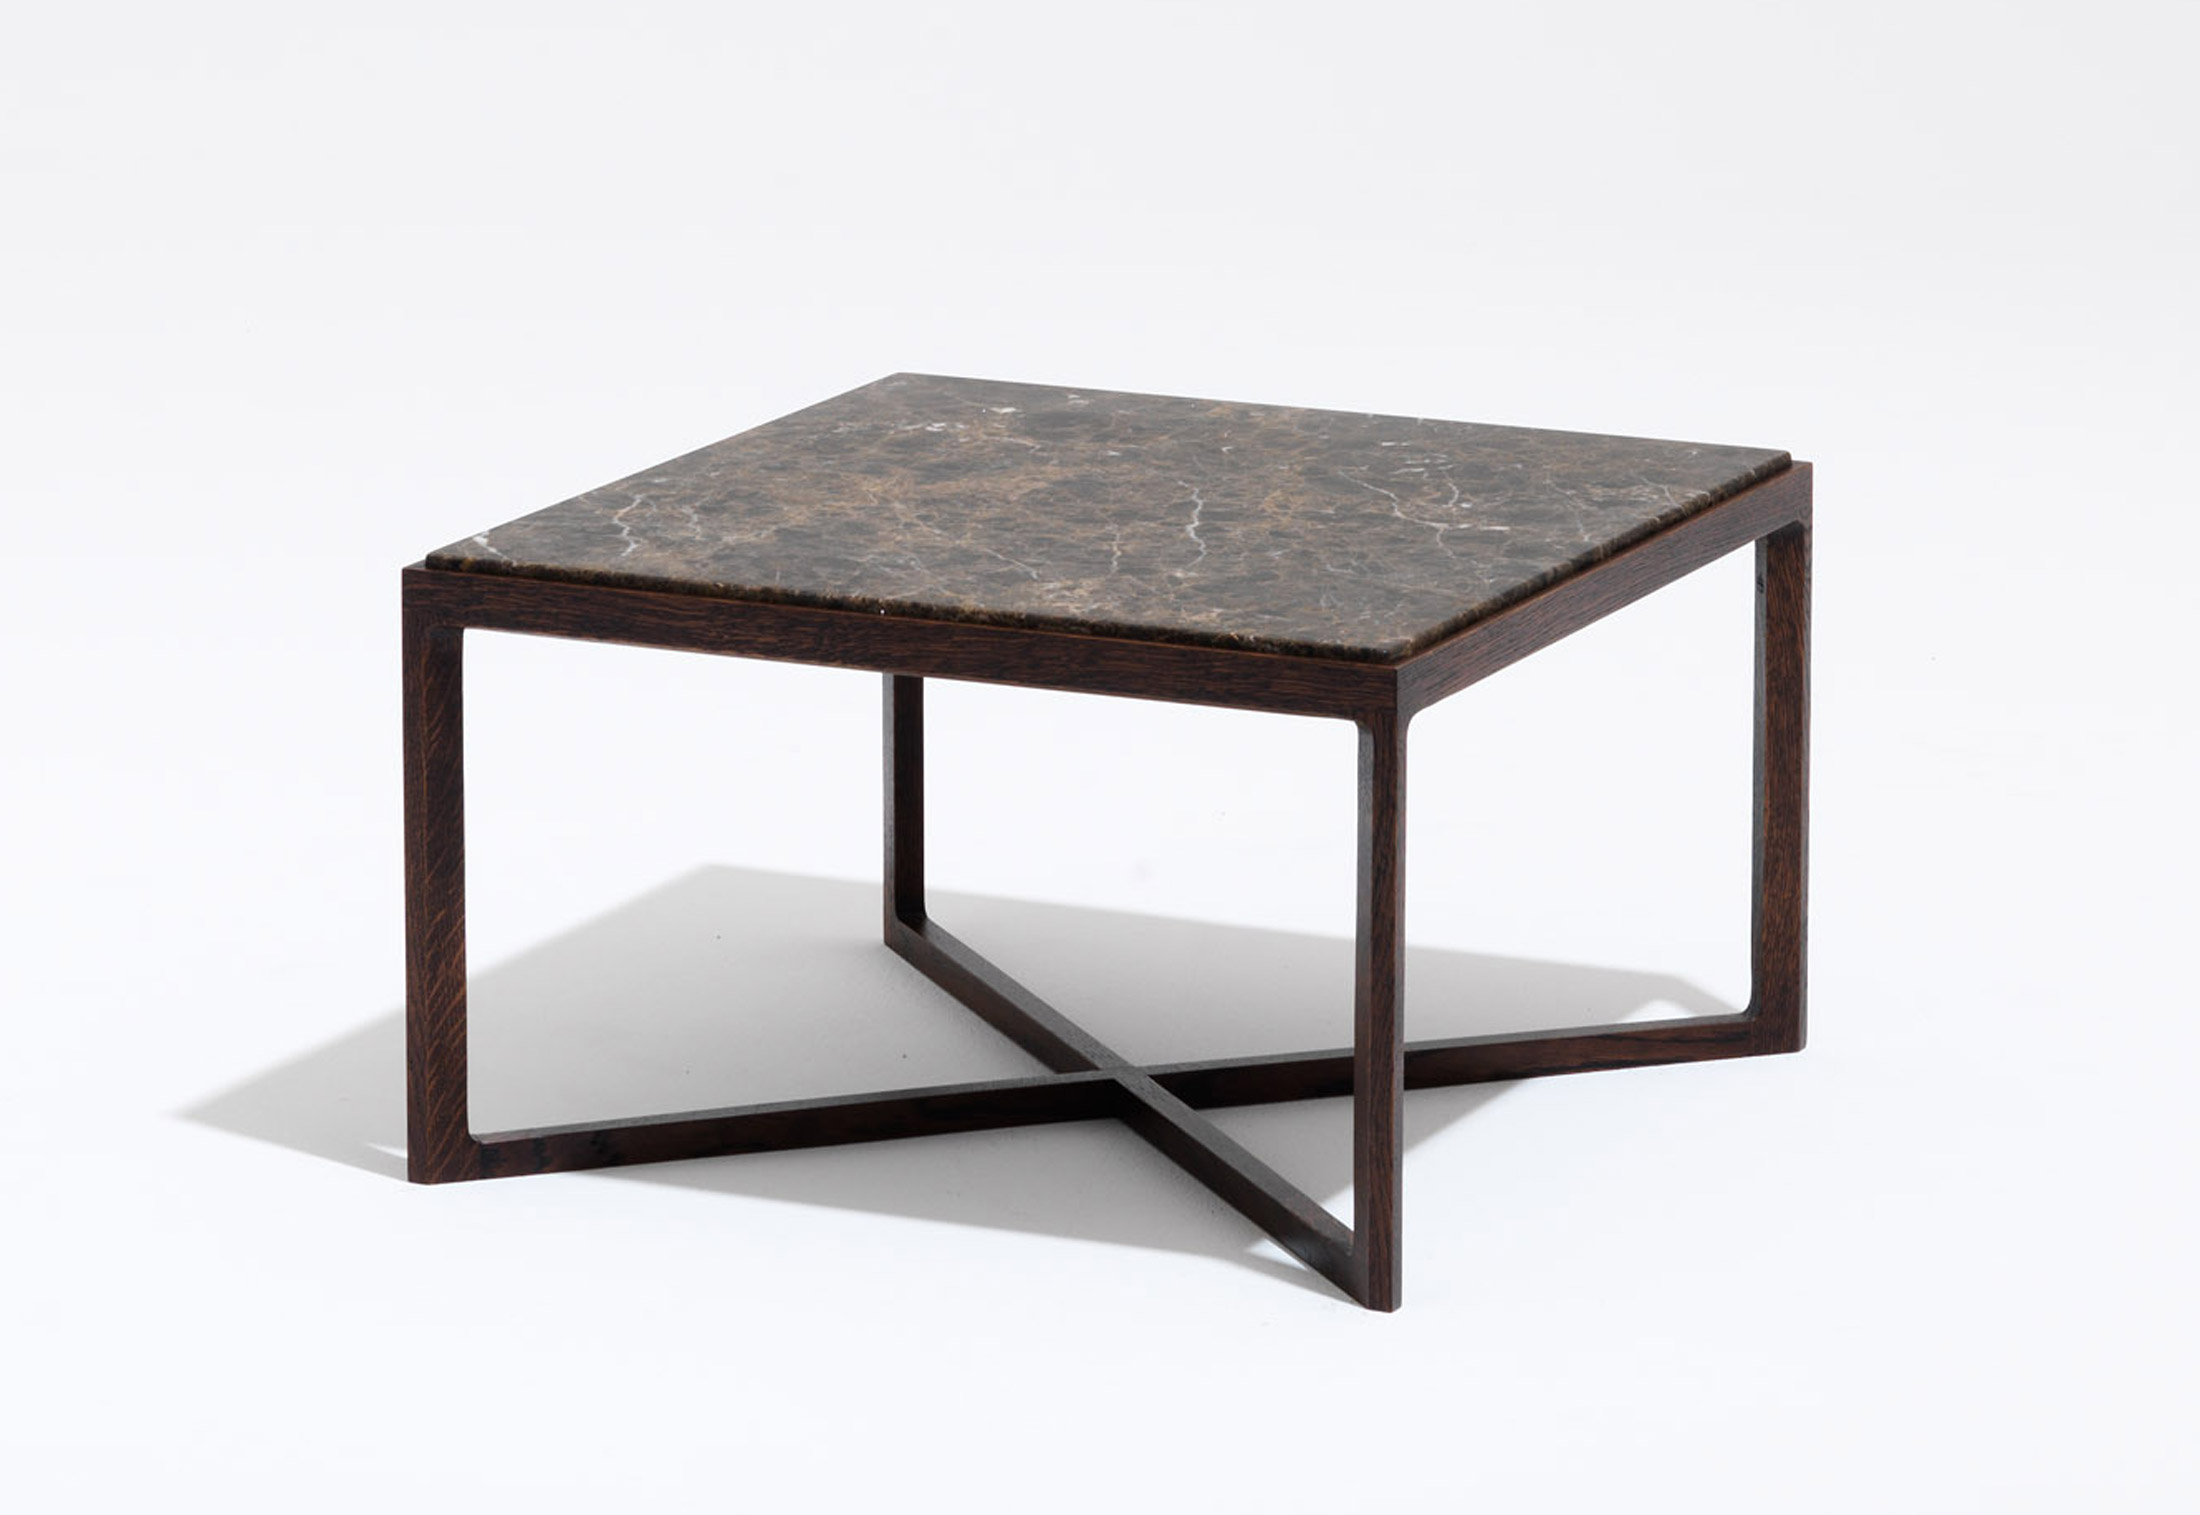 Krusin Coffee table by Knoll